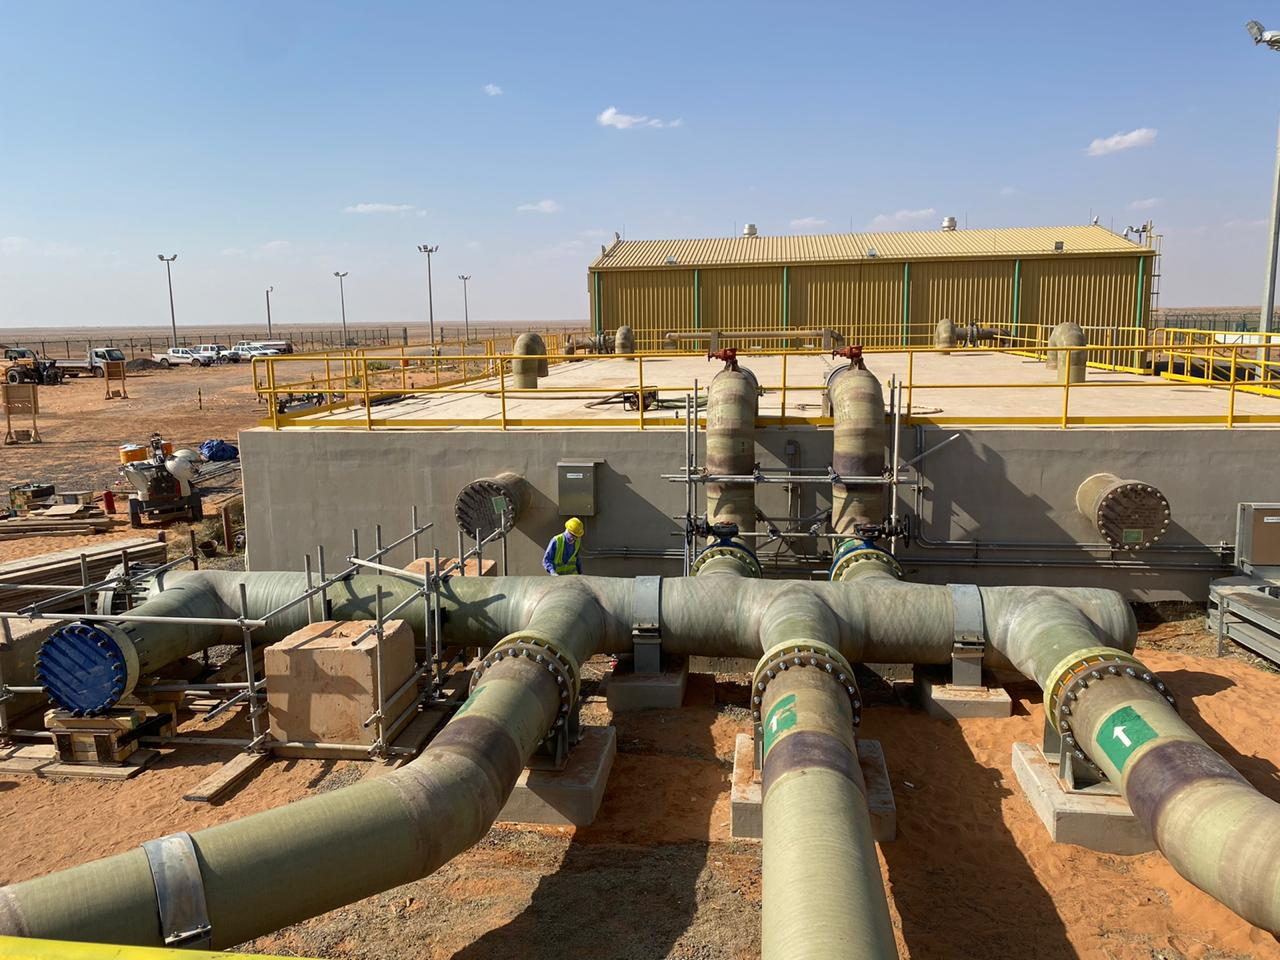 INFRASTRUCTURE & UTILITIES WORK FOR TWO PRODUCTION WELLS AT WA'AD AL SHAMAL WELL FIELD